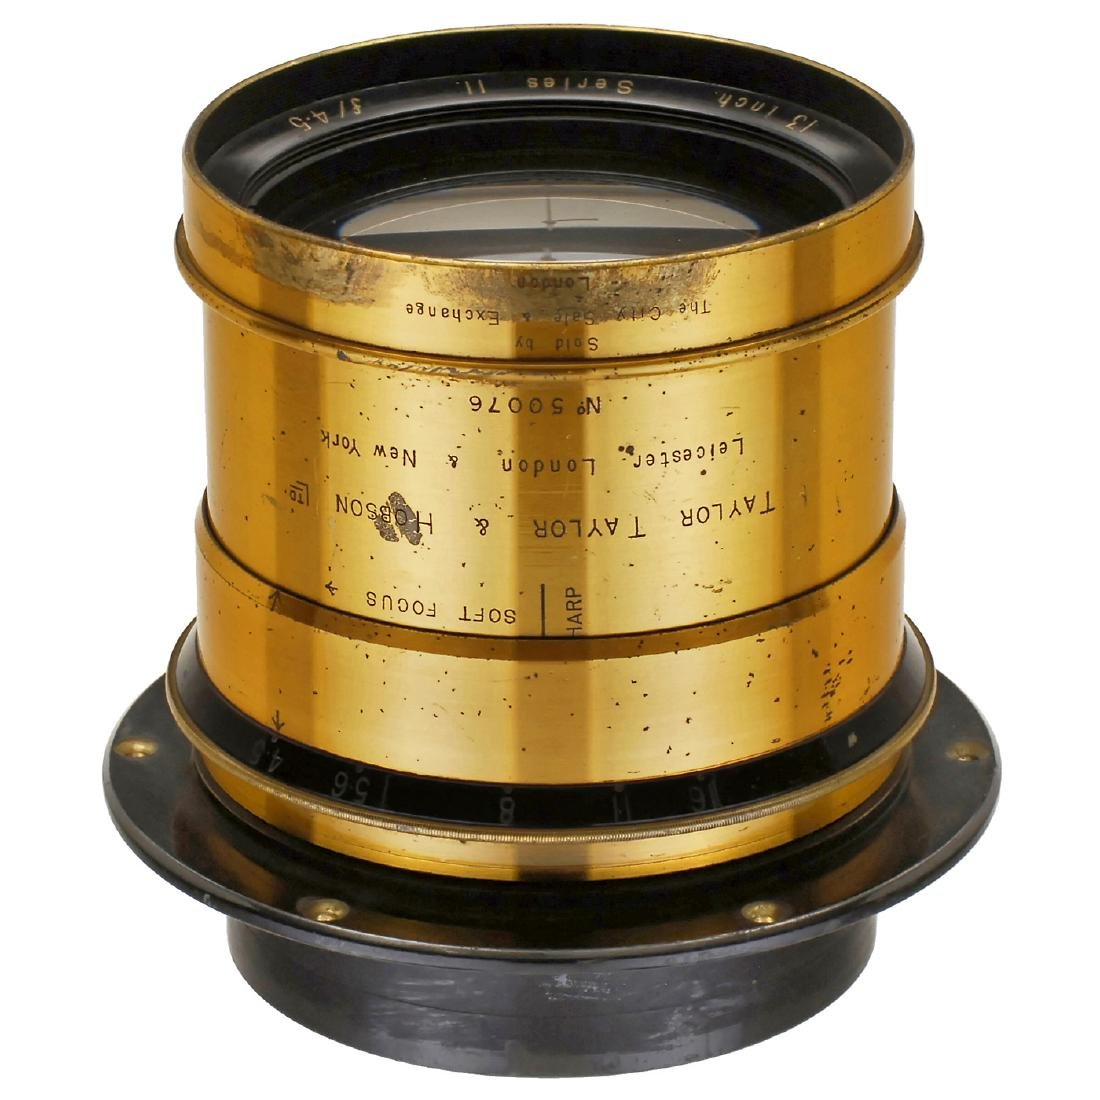 "Cooke ""Soft Focus"" Anastigmat 4,5/13 in., c. 1905"